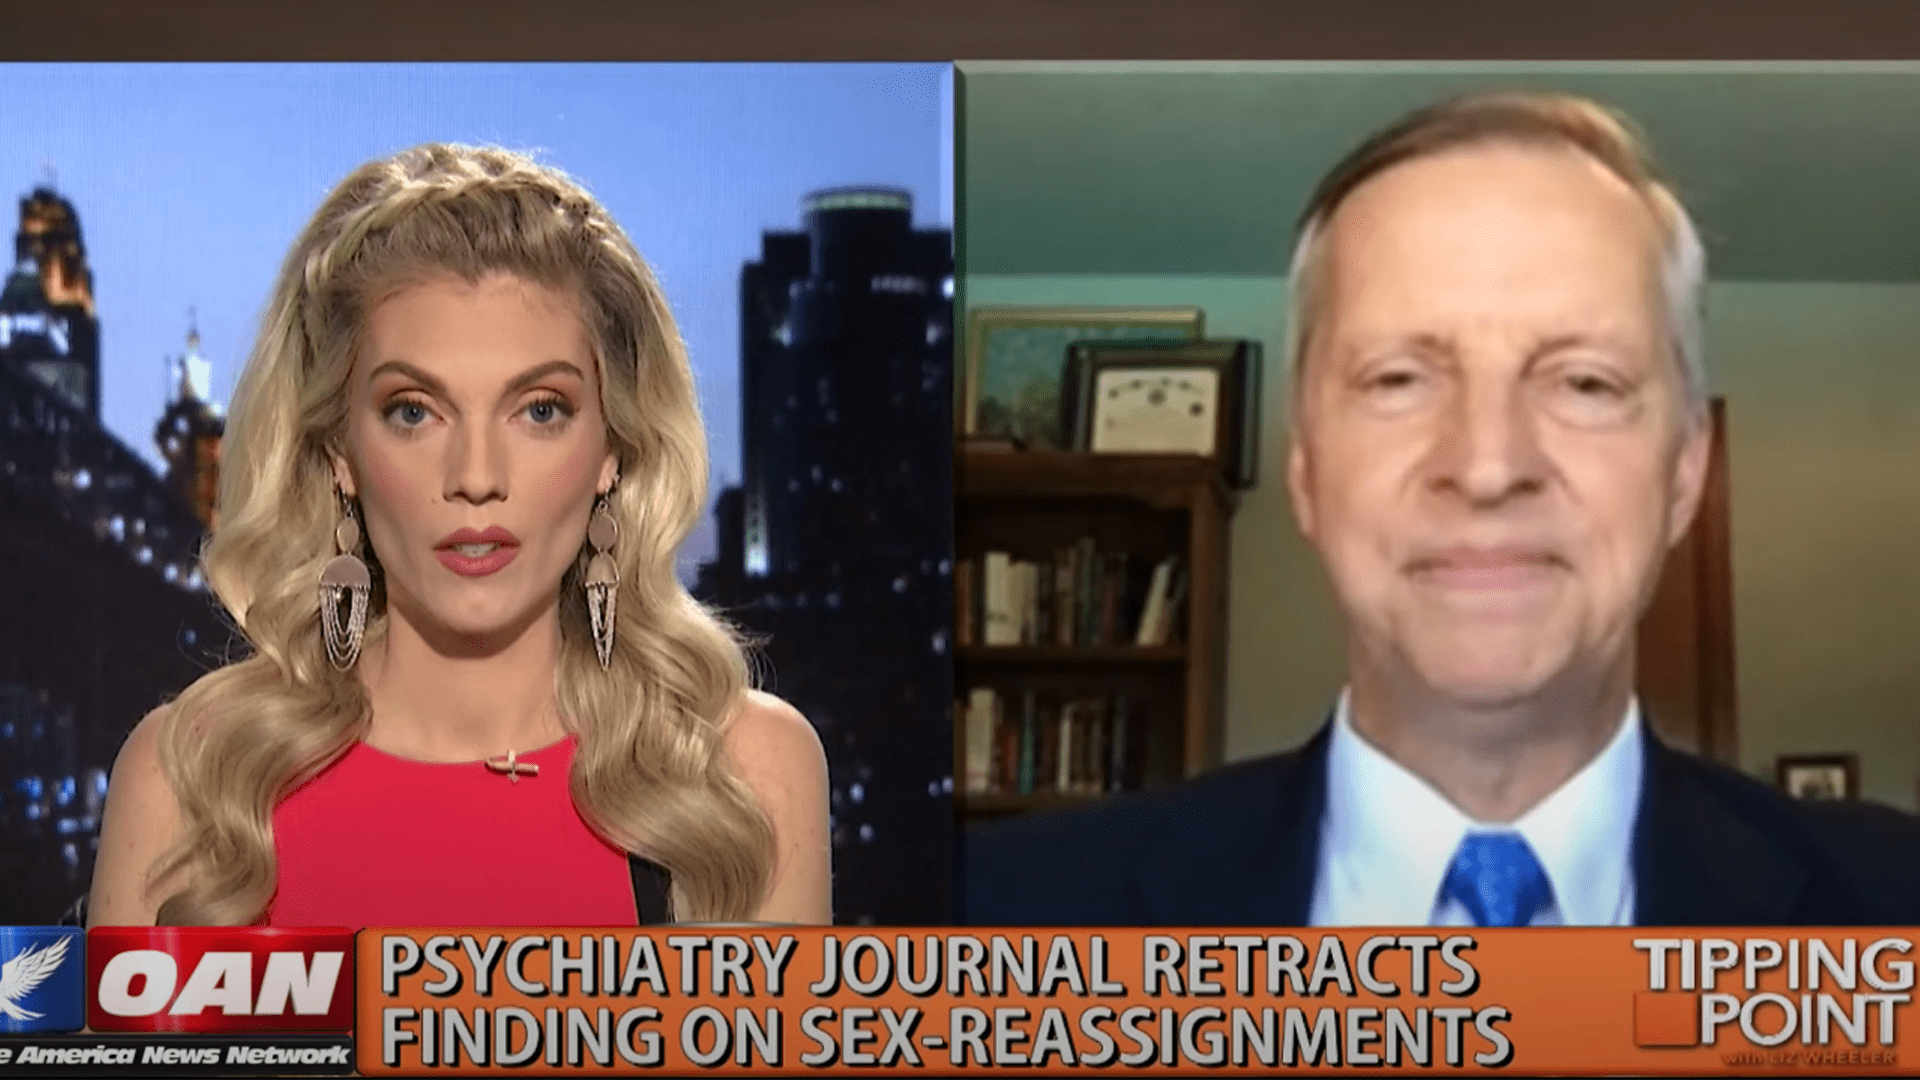 Psychiatry Journal Retracts Findings about Sex-Reassignments